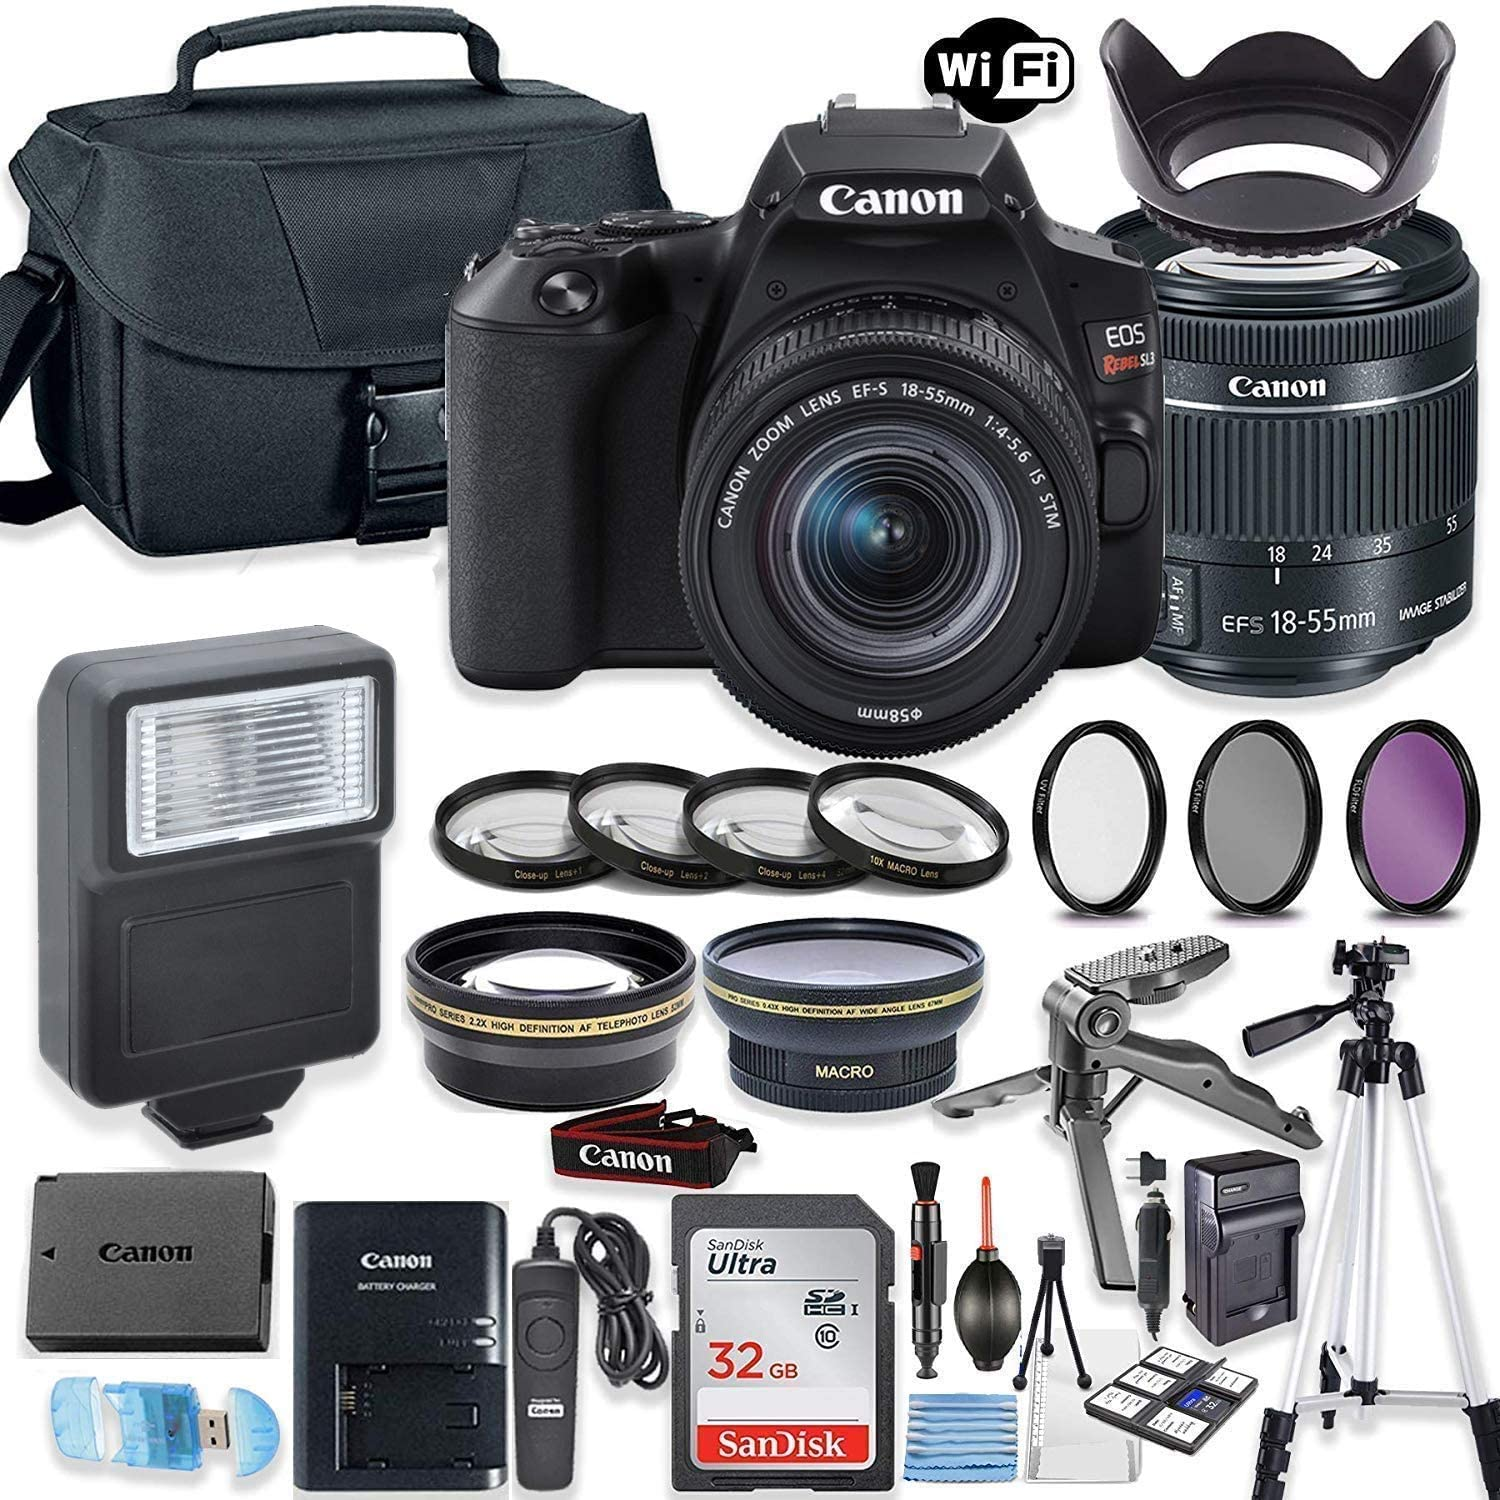 Canon EOS Rebel Surprise price SL3 DSLR Camera with 18-55mm Bundle S lowest price EF-S